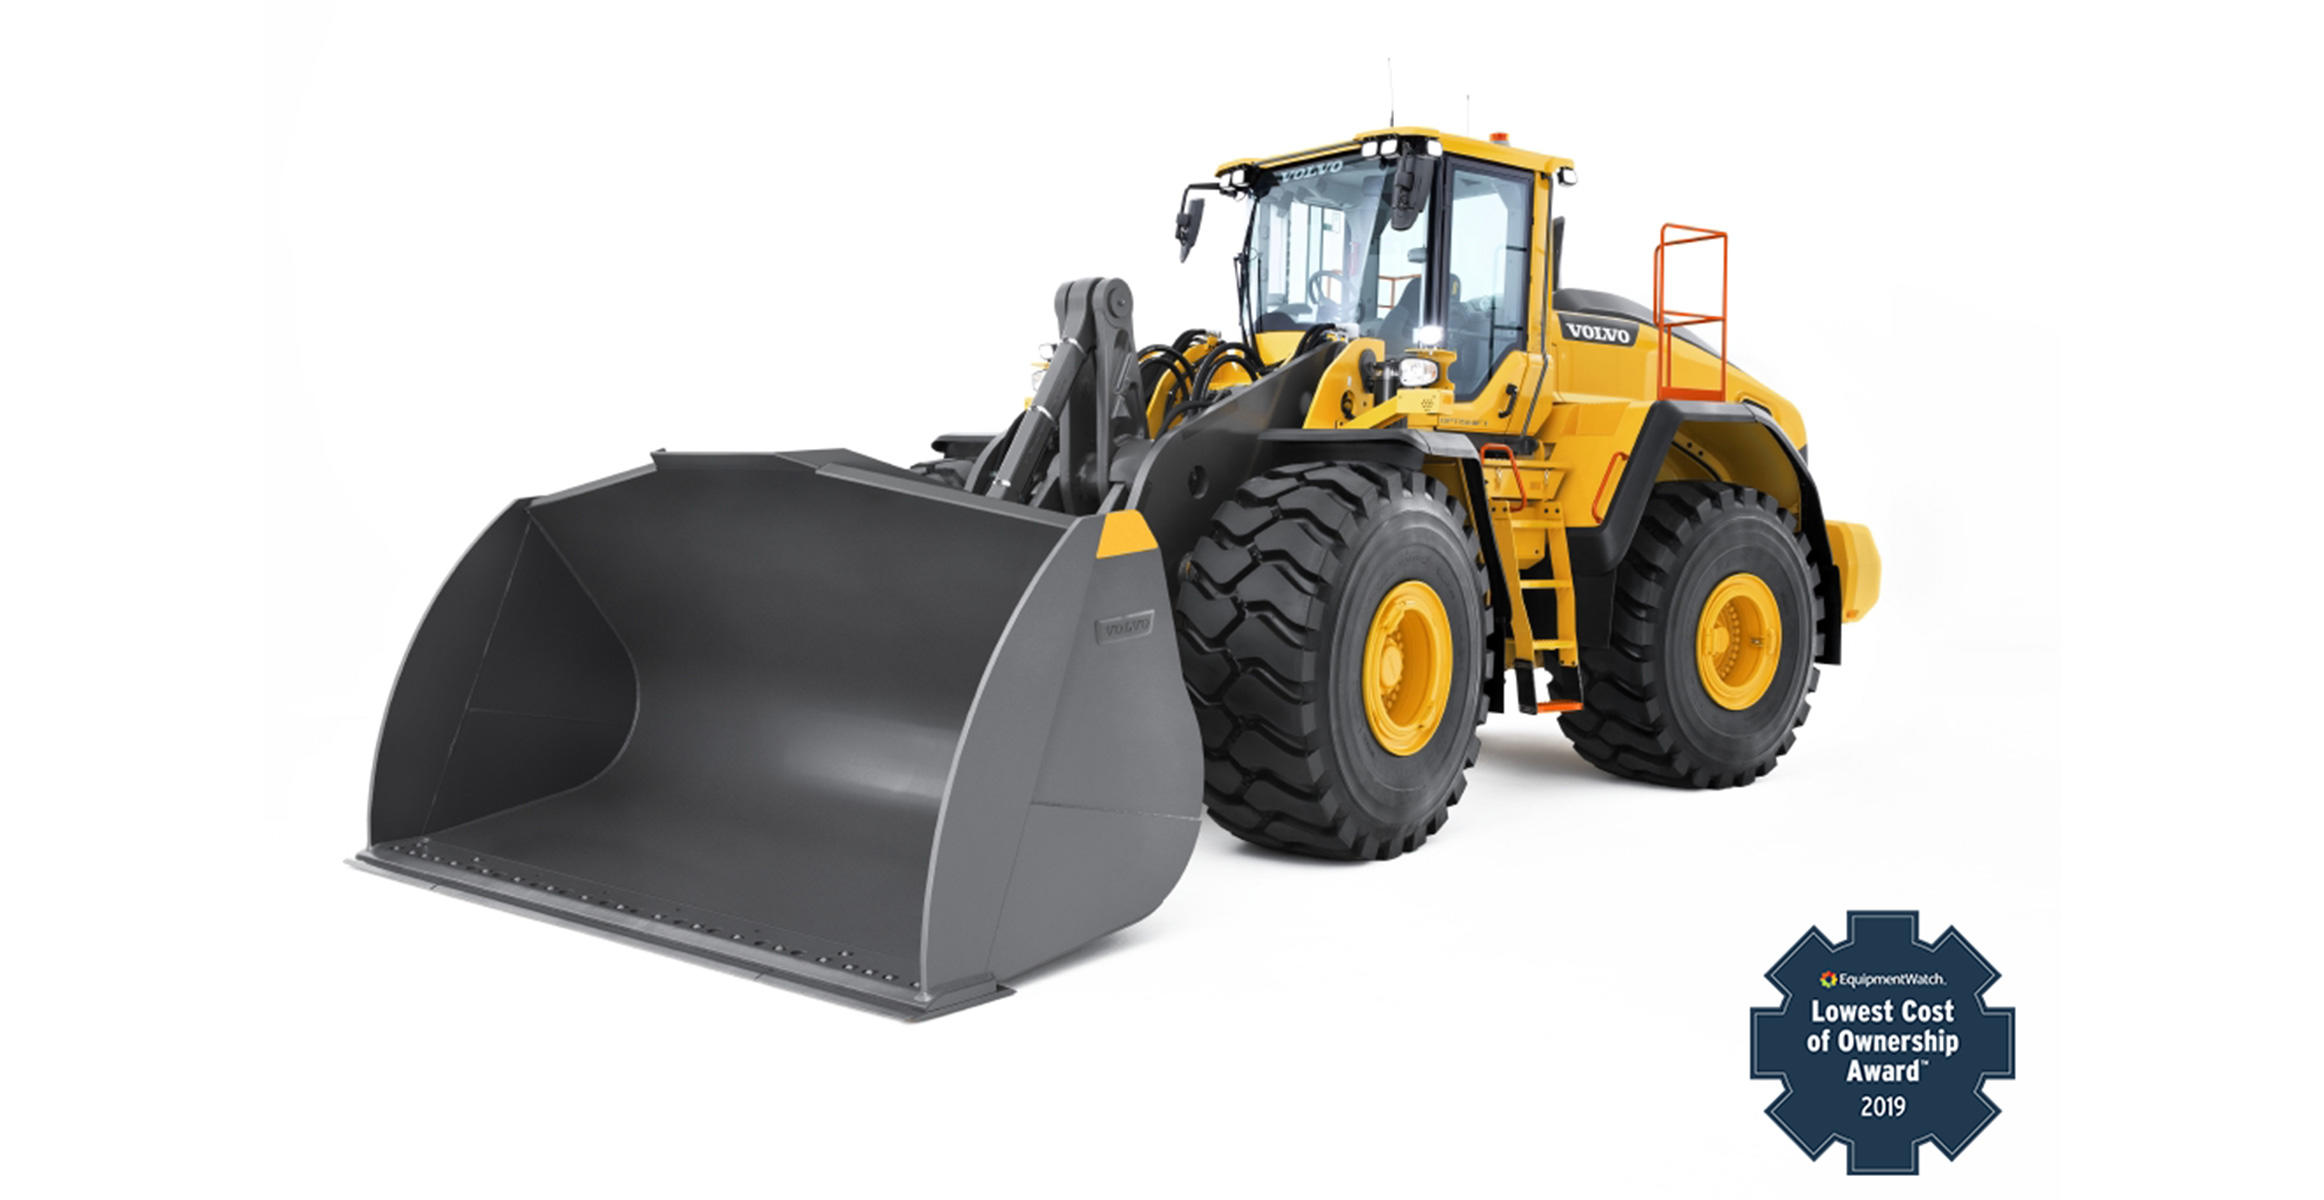 Volvo L180H Wheel Loader wins the 2019 EquipmentWatch Lowest Cost of Ownership award